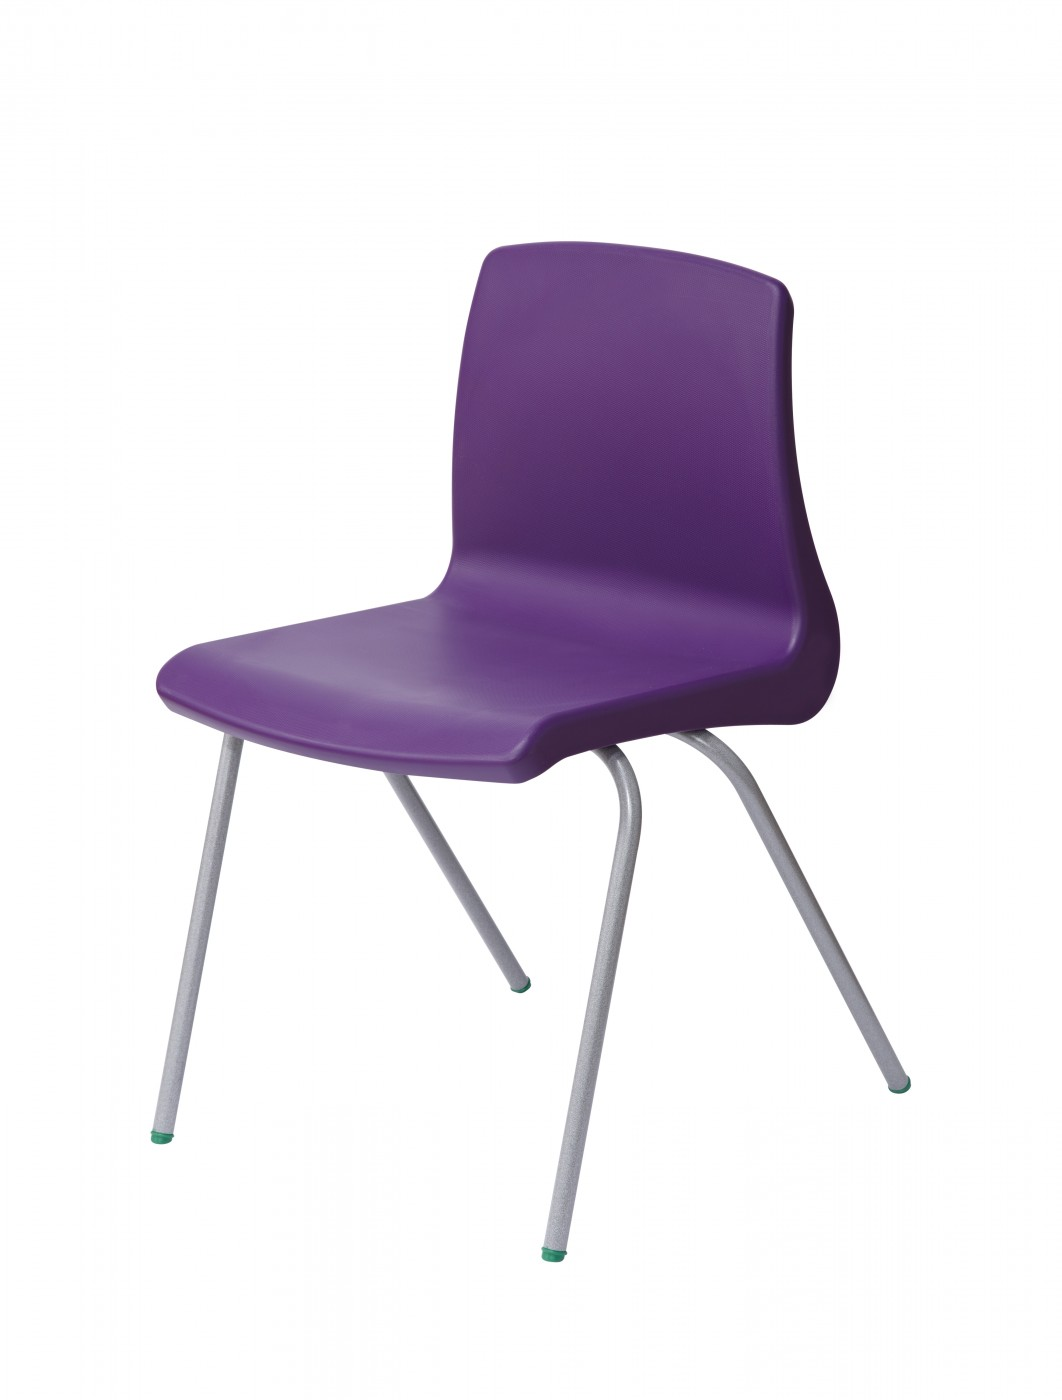 Metalliform NP Chairs   Age 8 11 Years Polypropylene Classroom Chairs NP4    Enlarged View